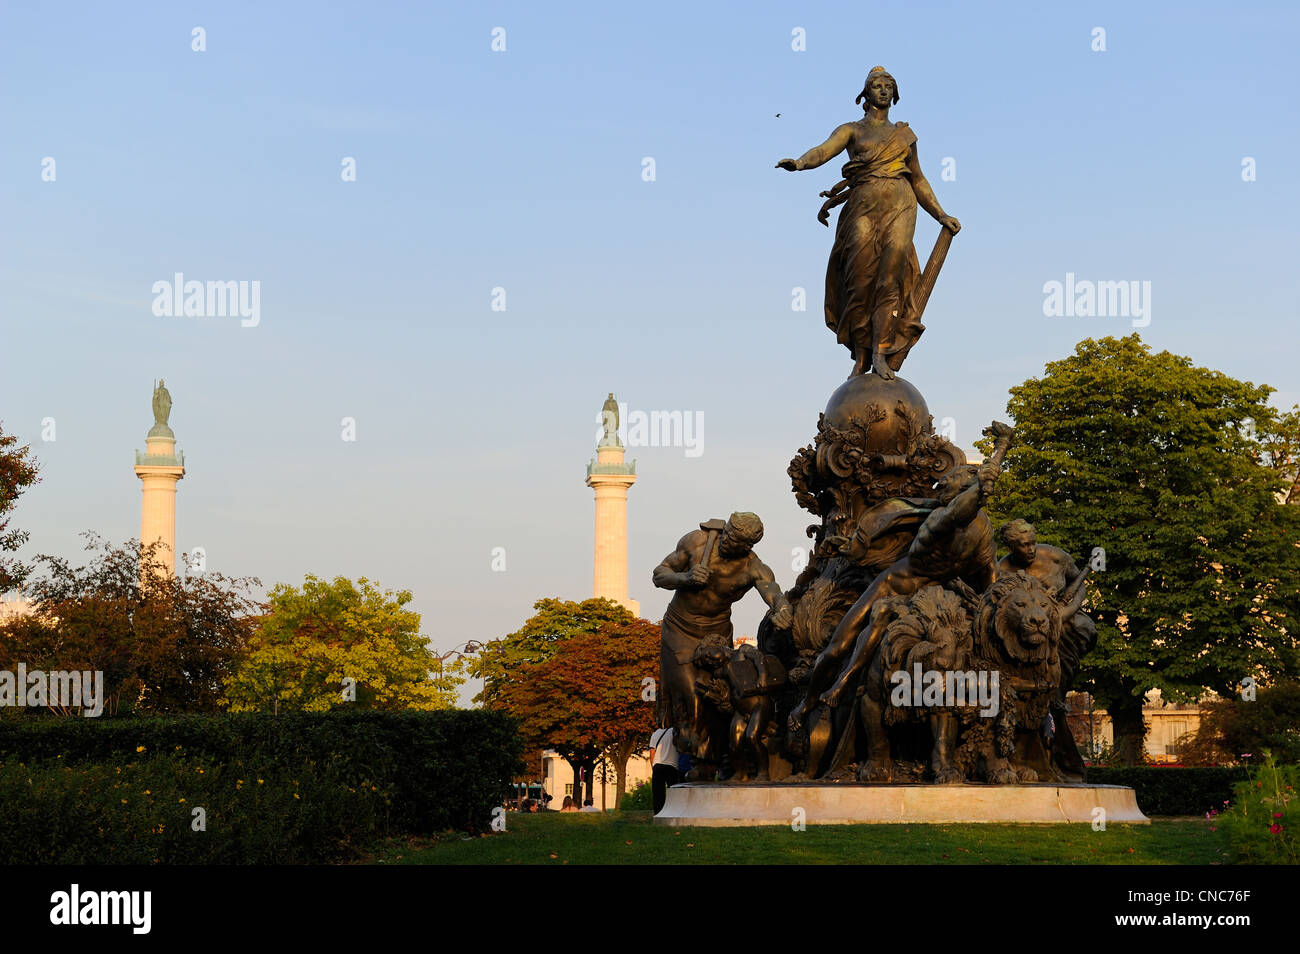 France, Paris, place de la Nation, The Triumph of the Republic is a bronze group ordered in 1879 and made by sculptor - Stock Image